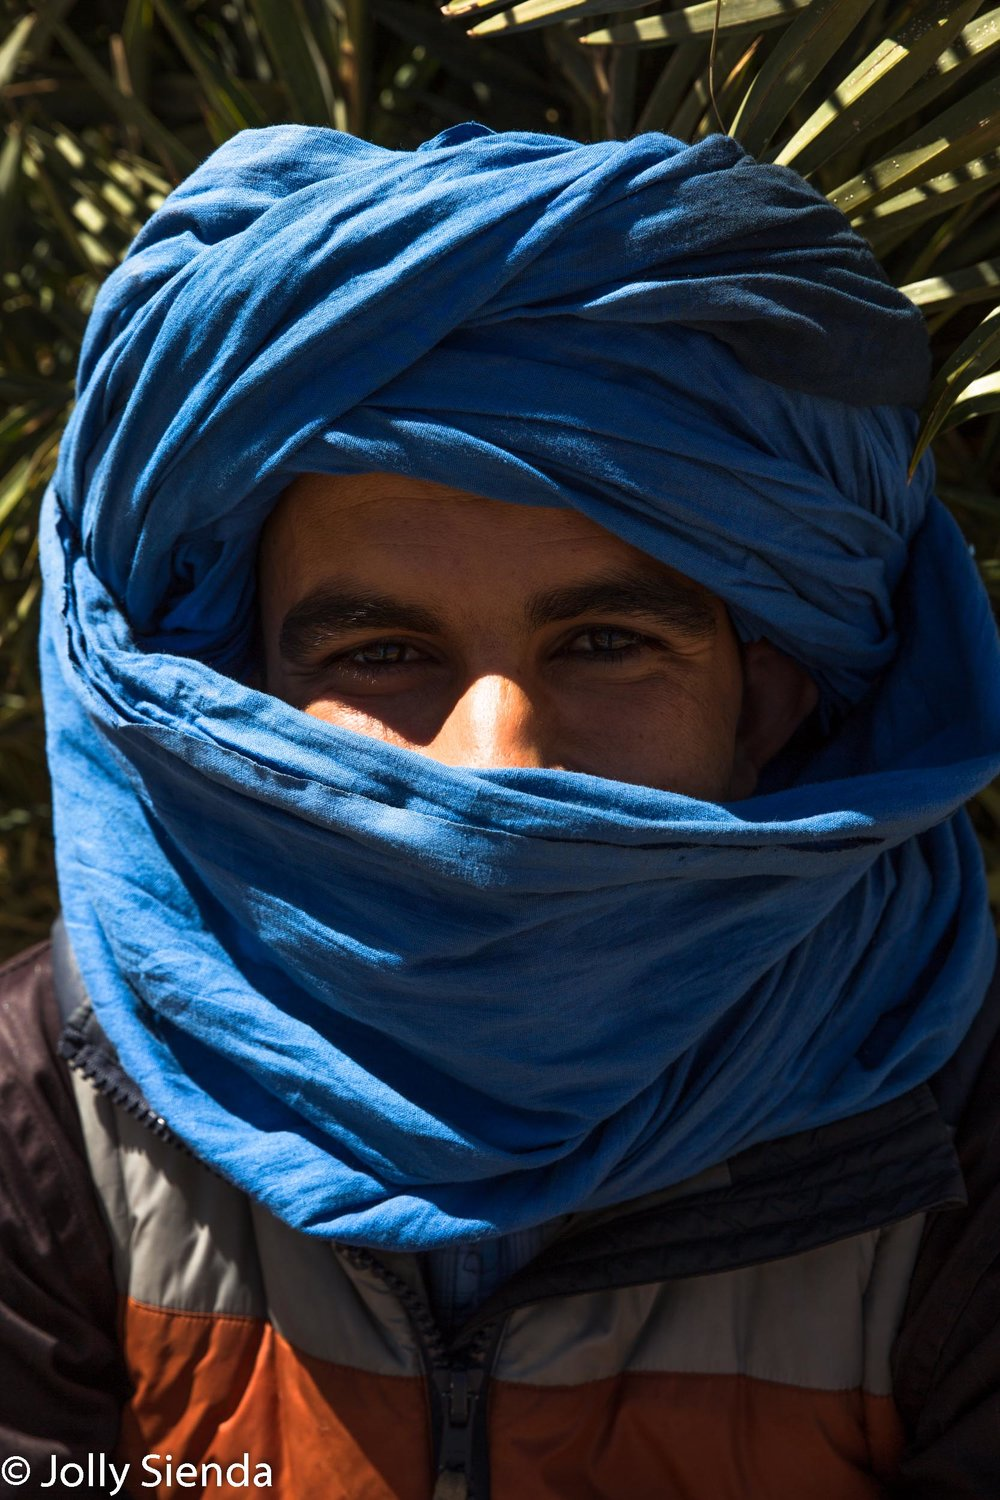 Young Berber man in the blue turban